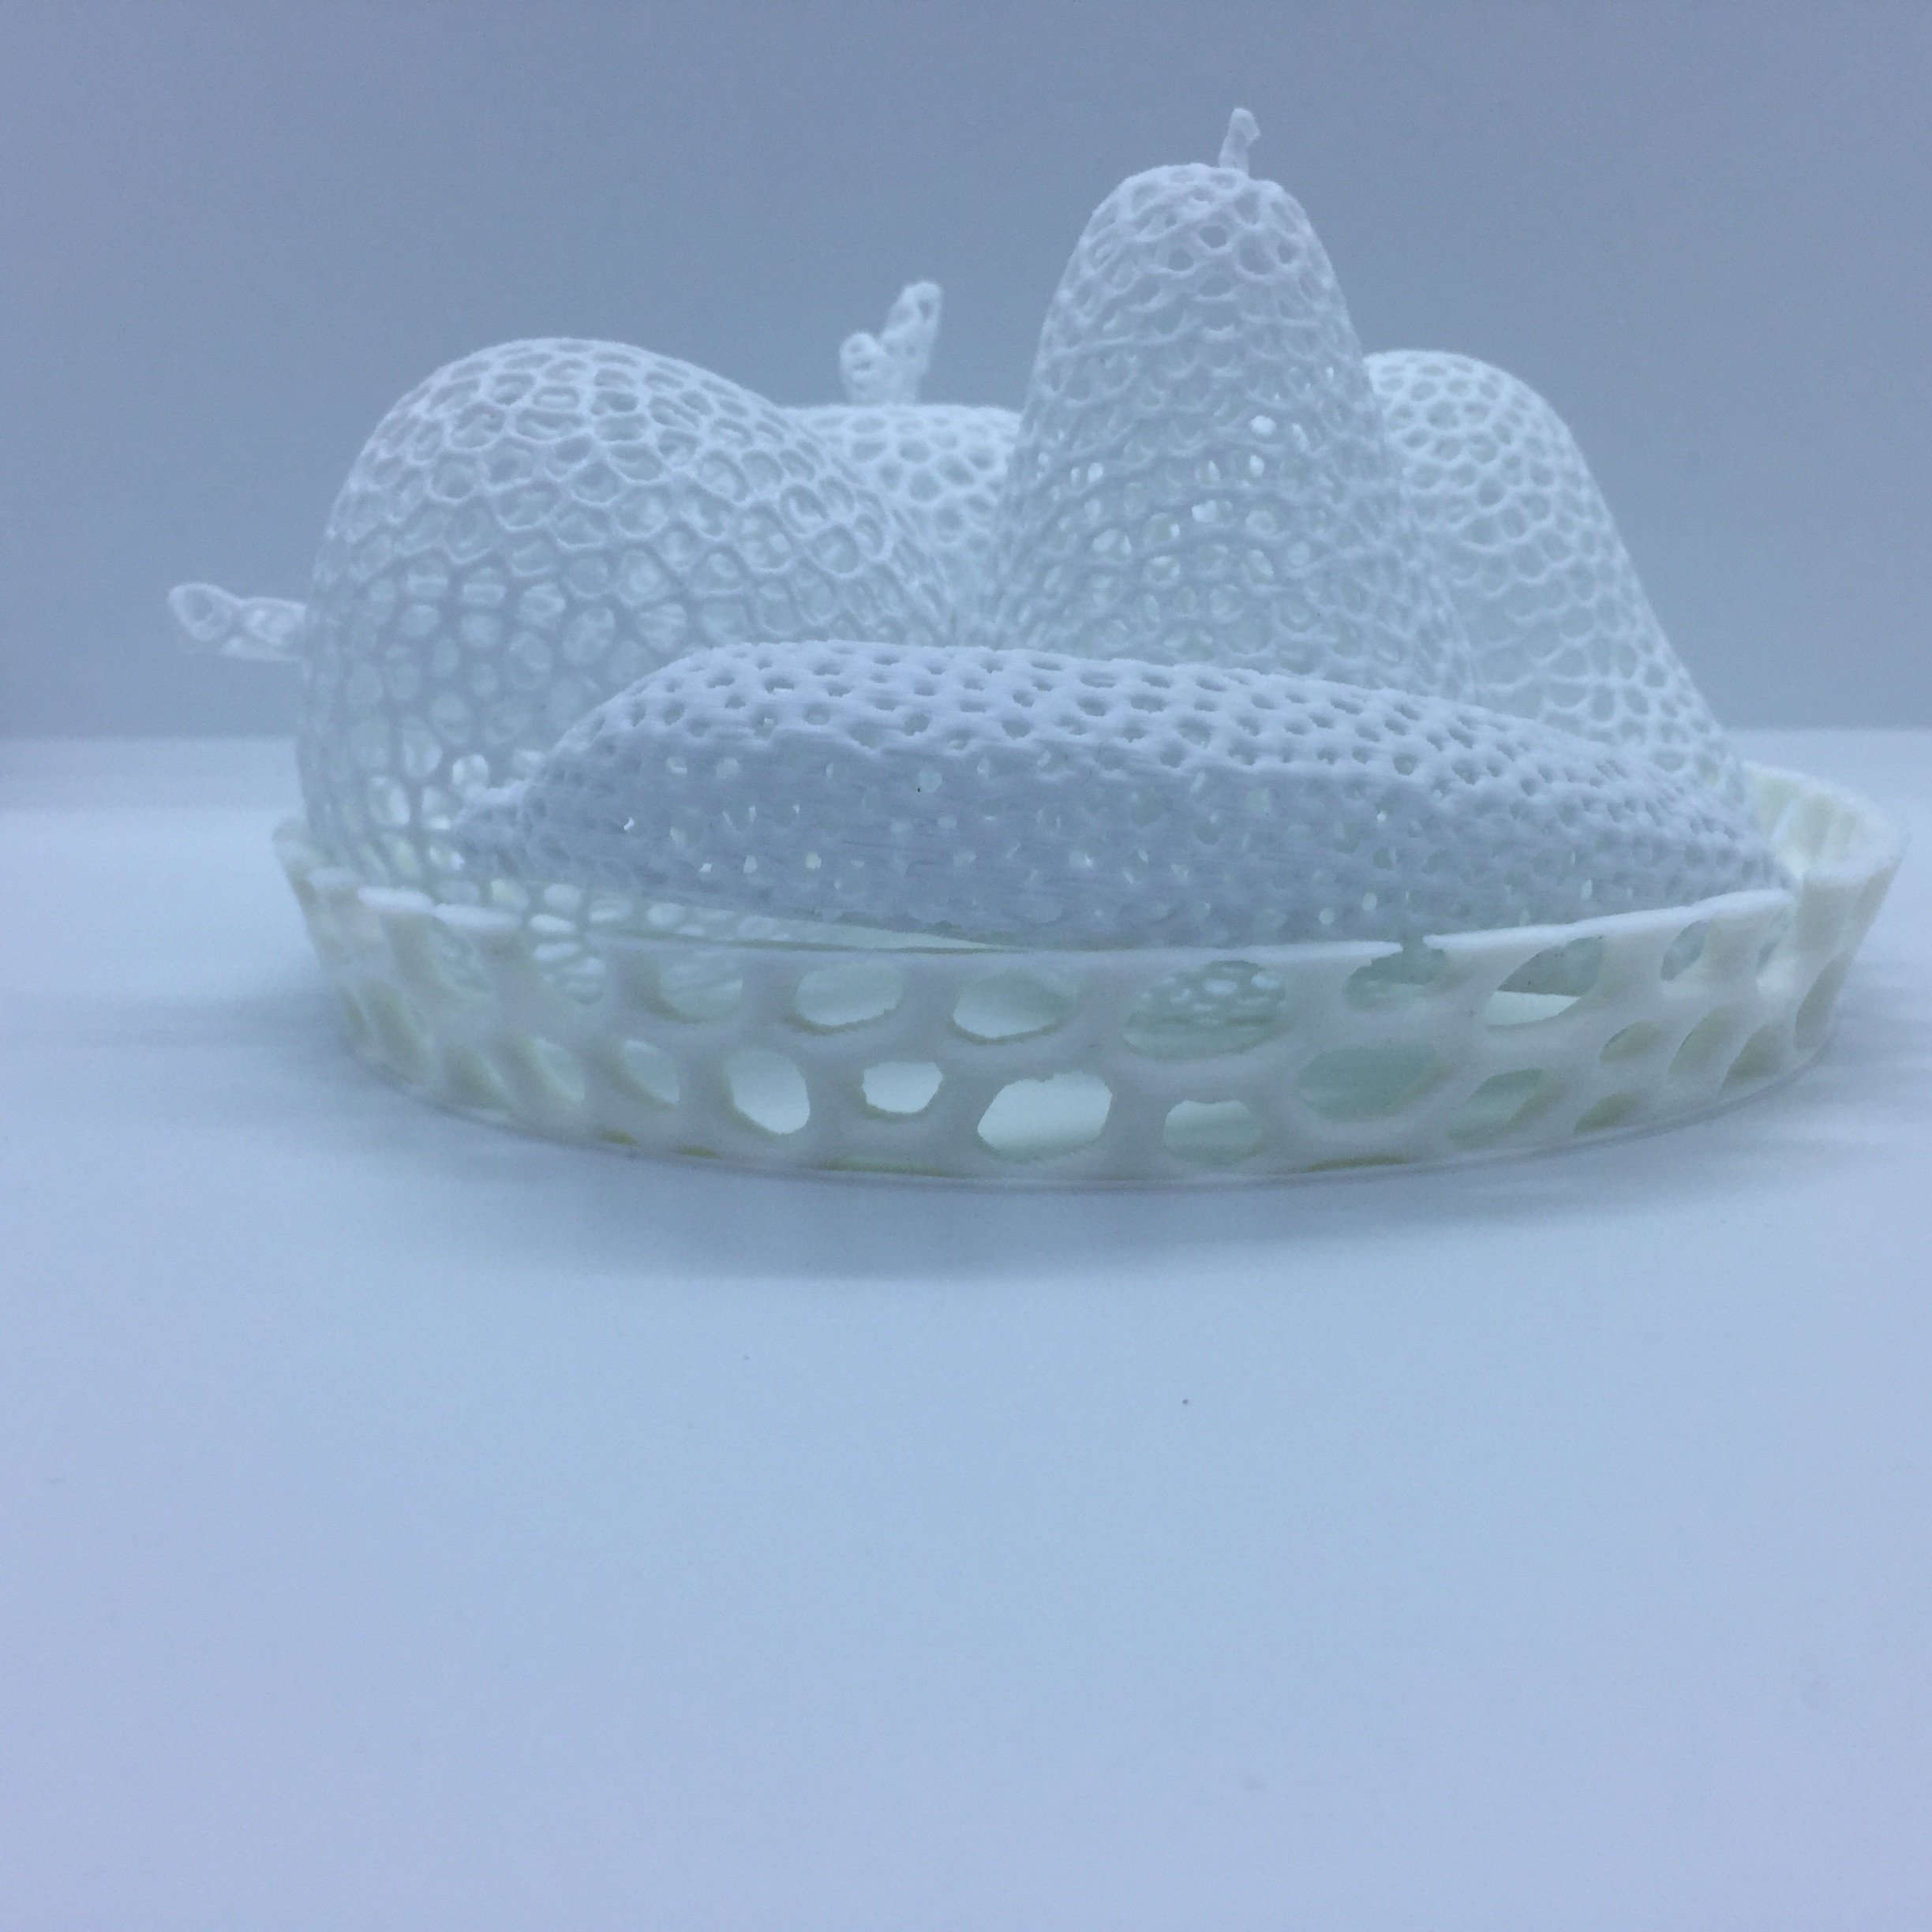 IMG_2095.JPG Download STL file Voronoi fruit bowl • 3D printing model, juanpix